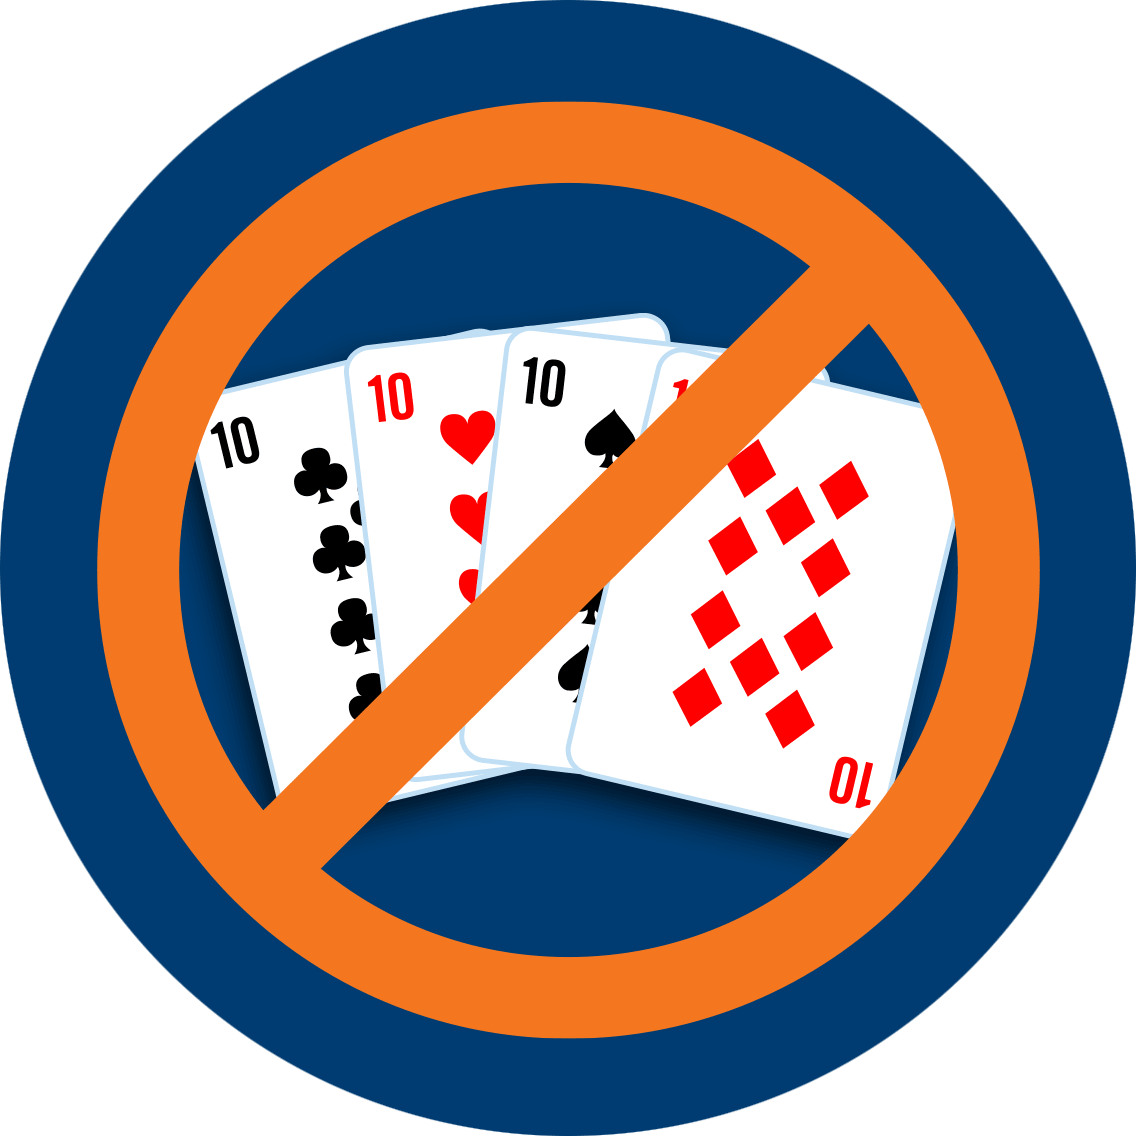 A 10 of clubs, hearts, spades and diamonds, crossed out with the international prohibition sign.